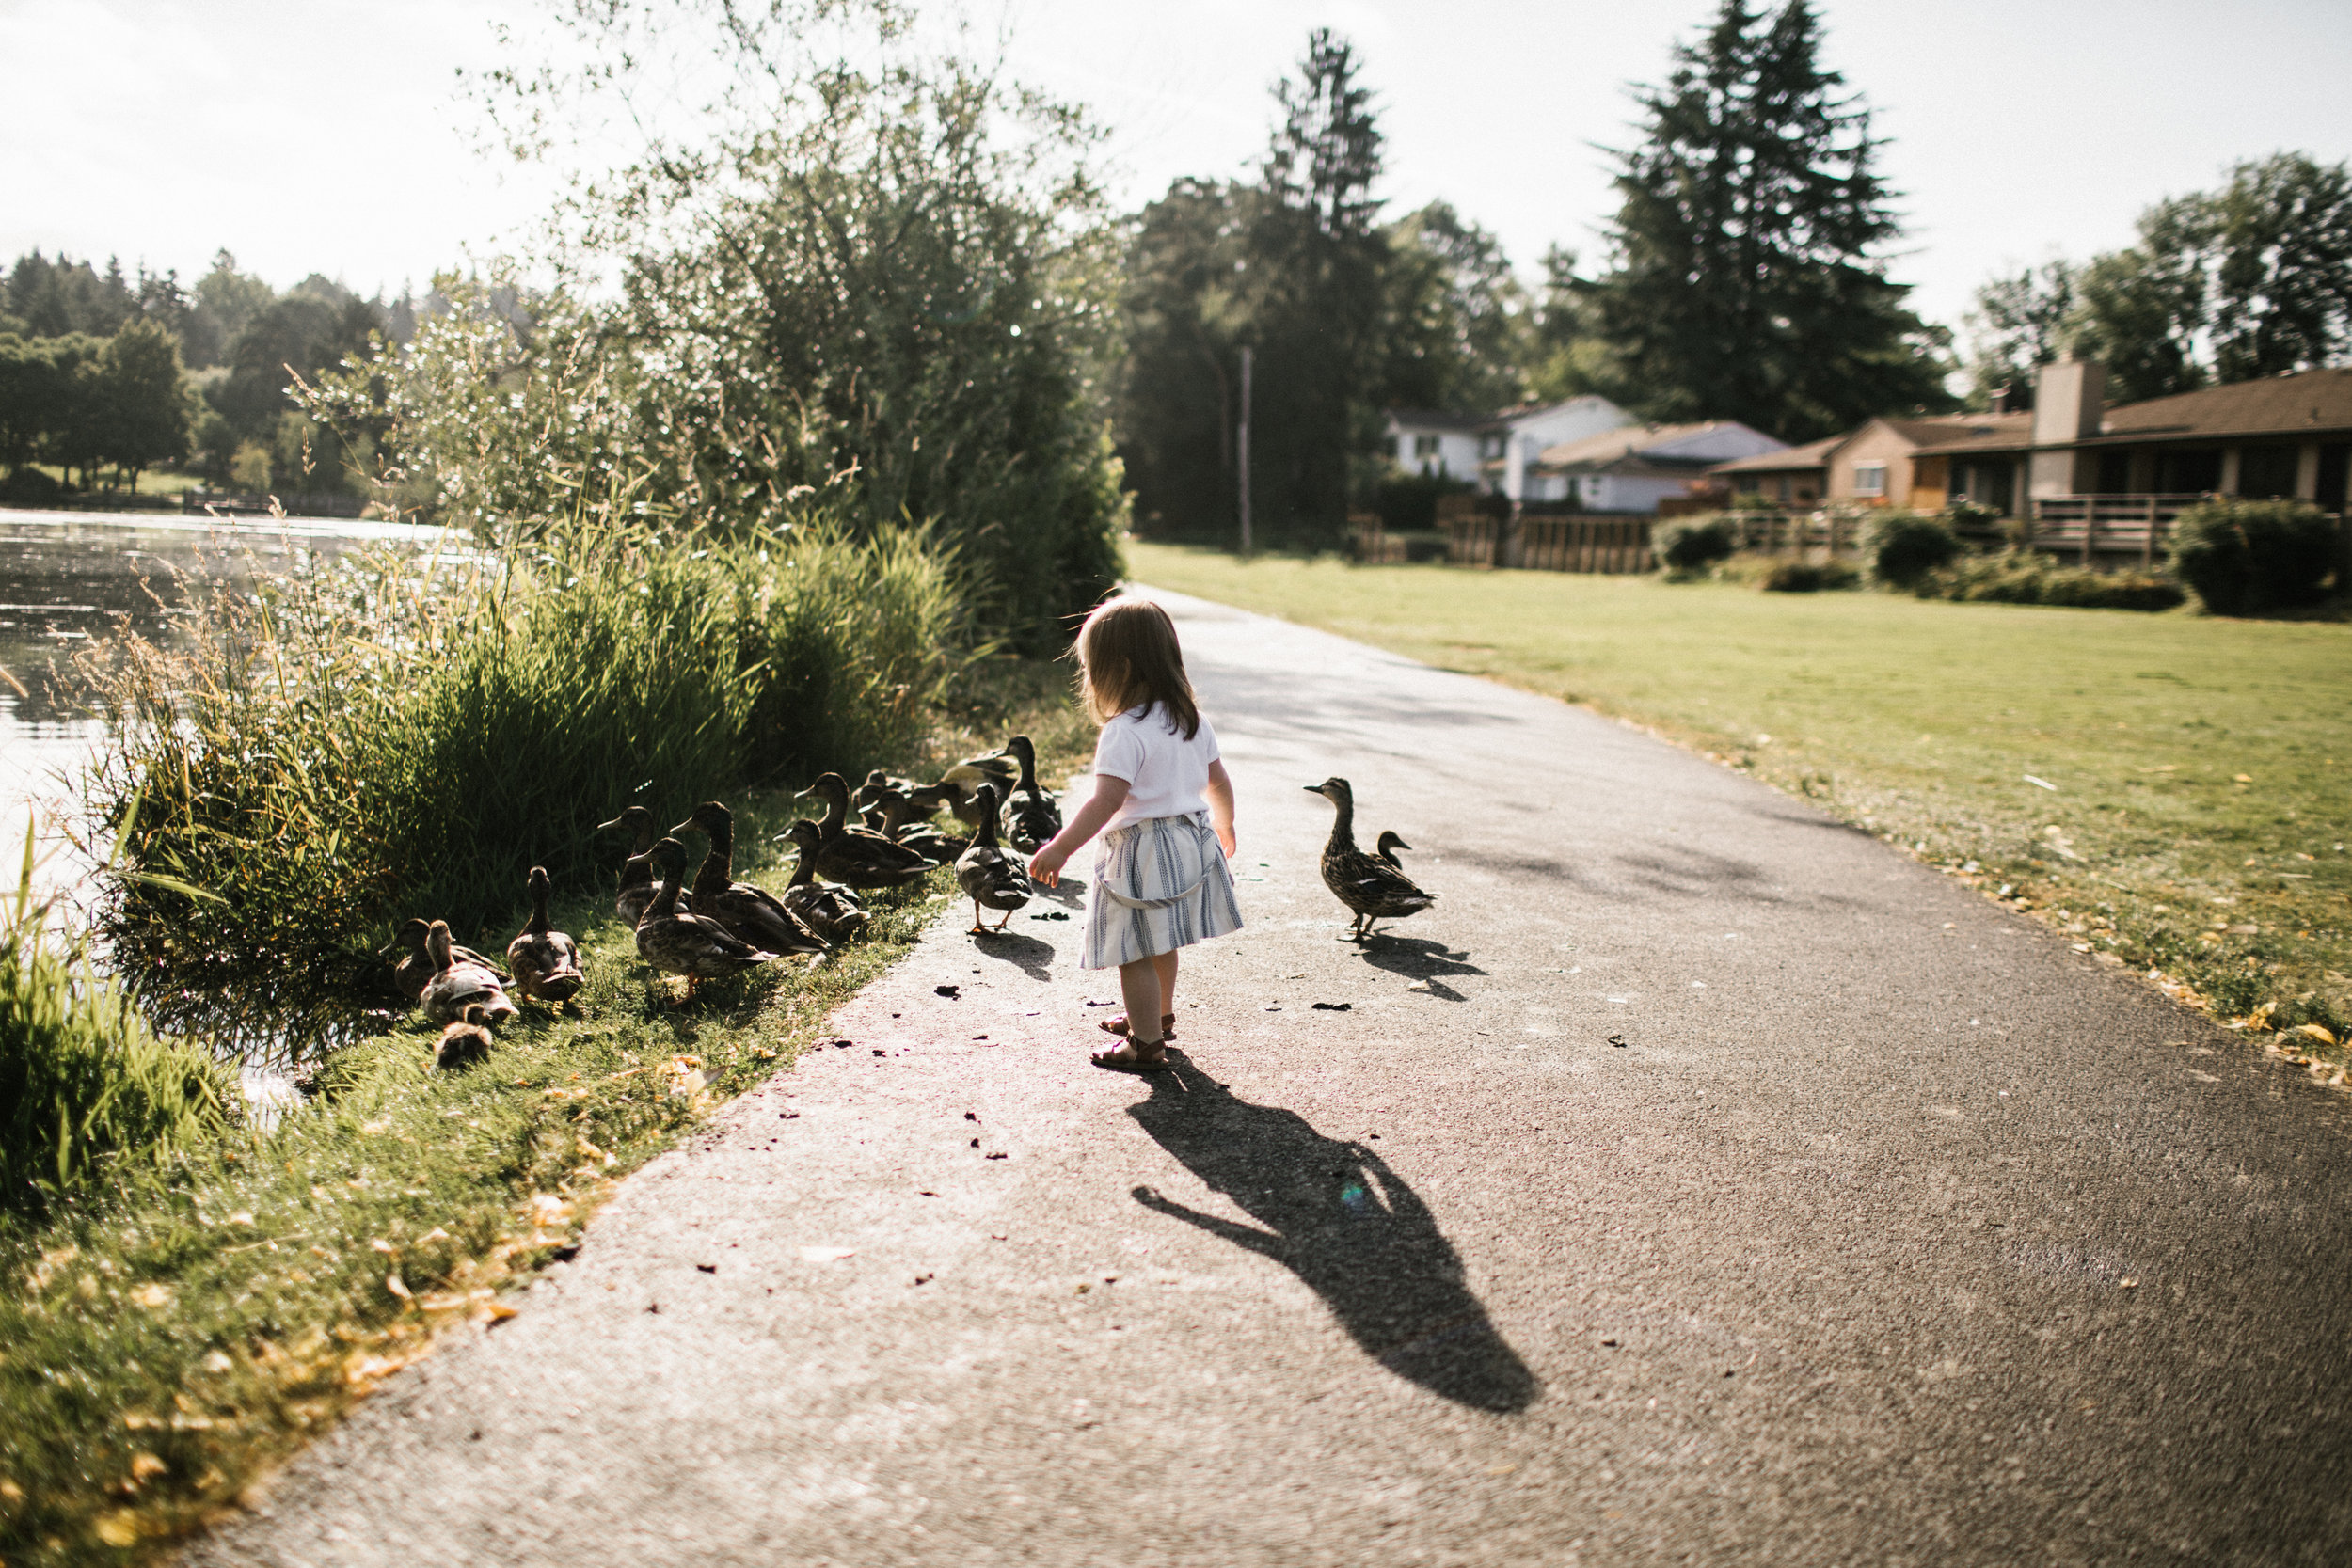 Toddler playing with ducks